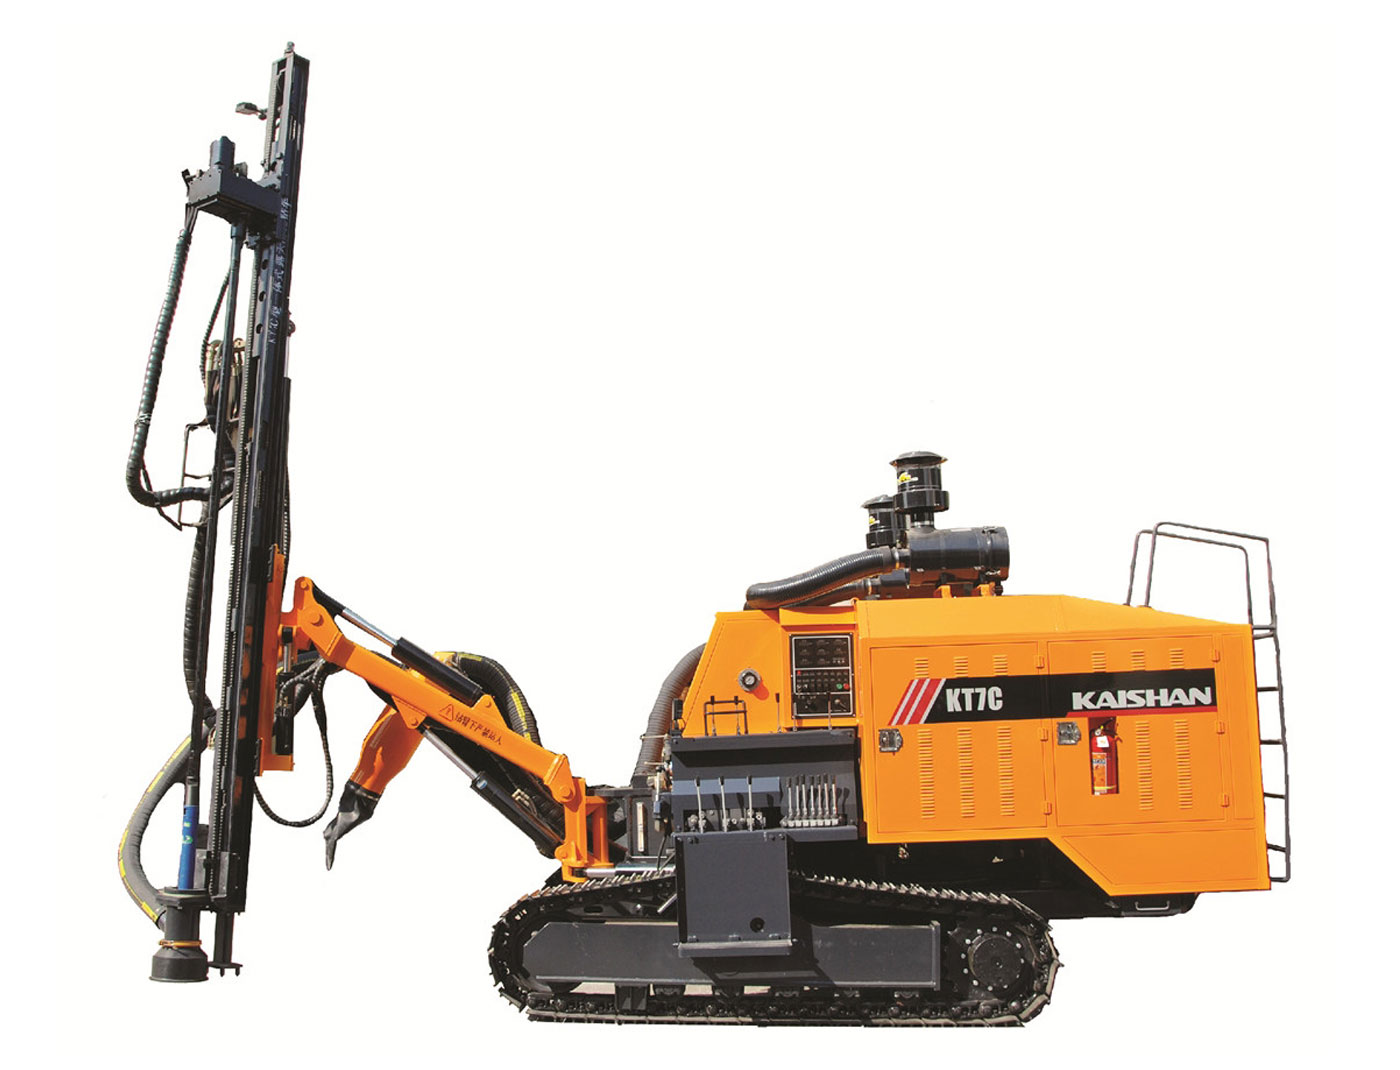 KAISHAN KT7C integrated drilling rig